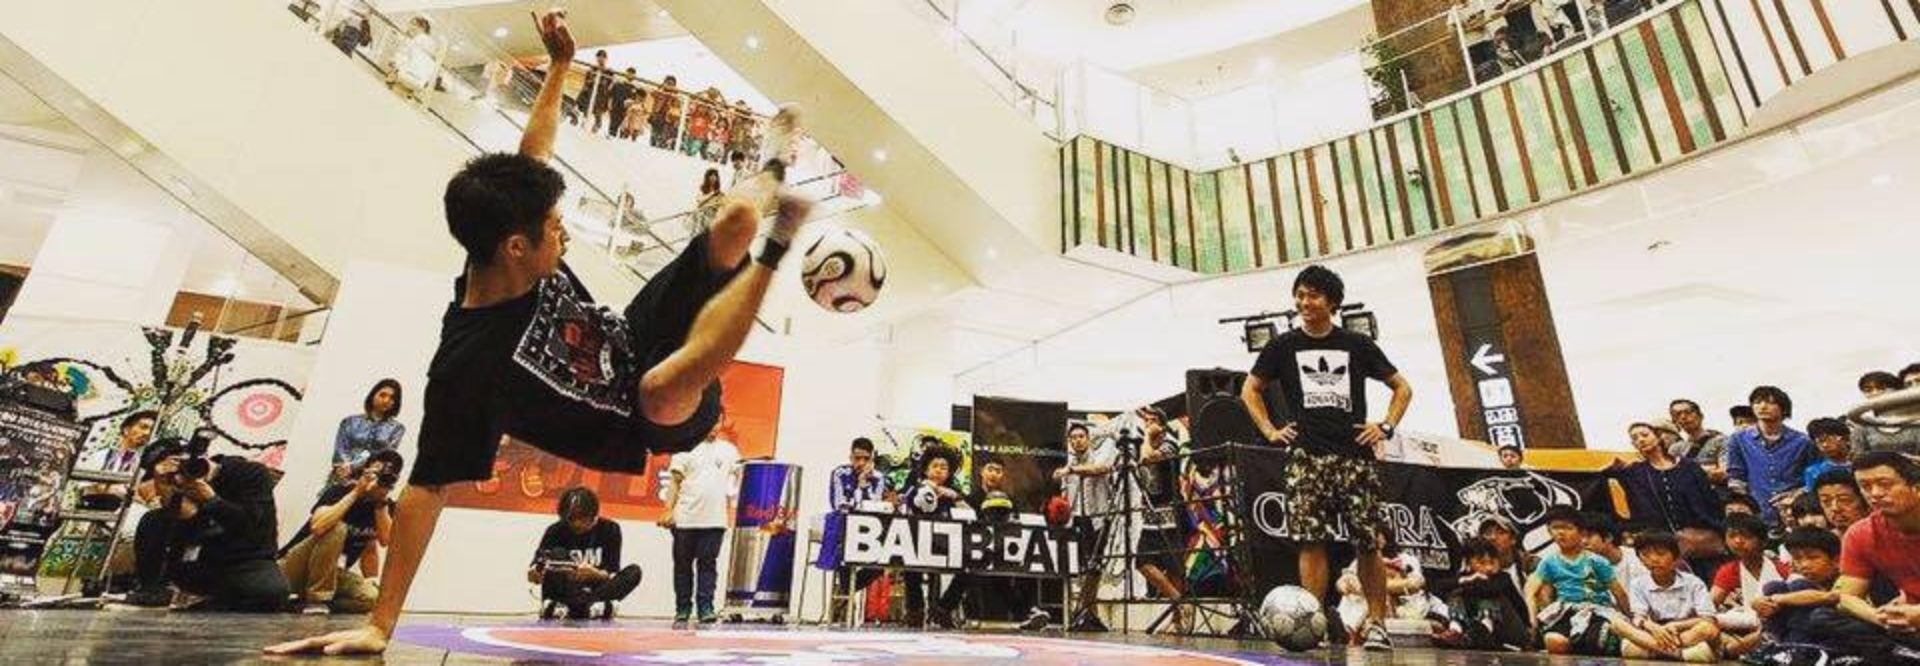 Freestyle Football.net